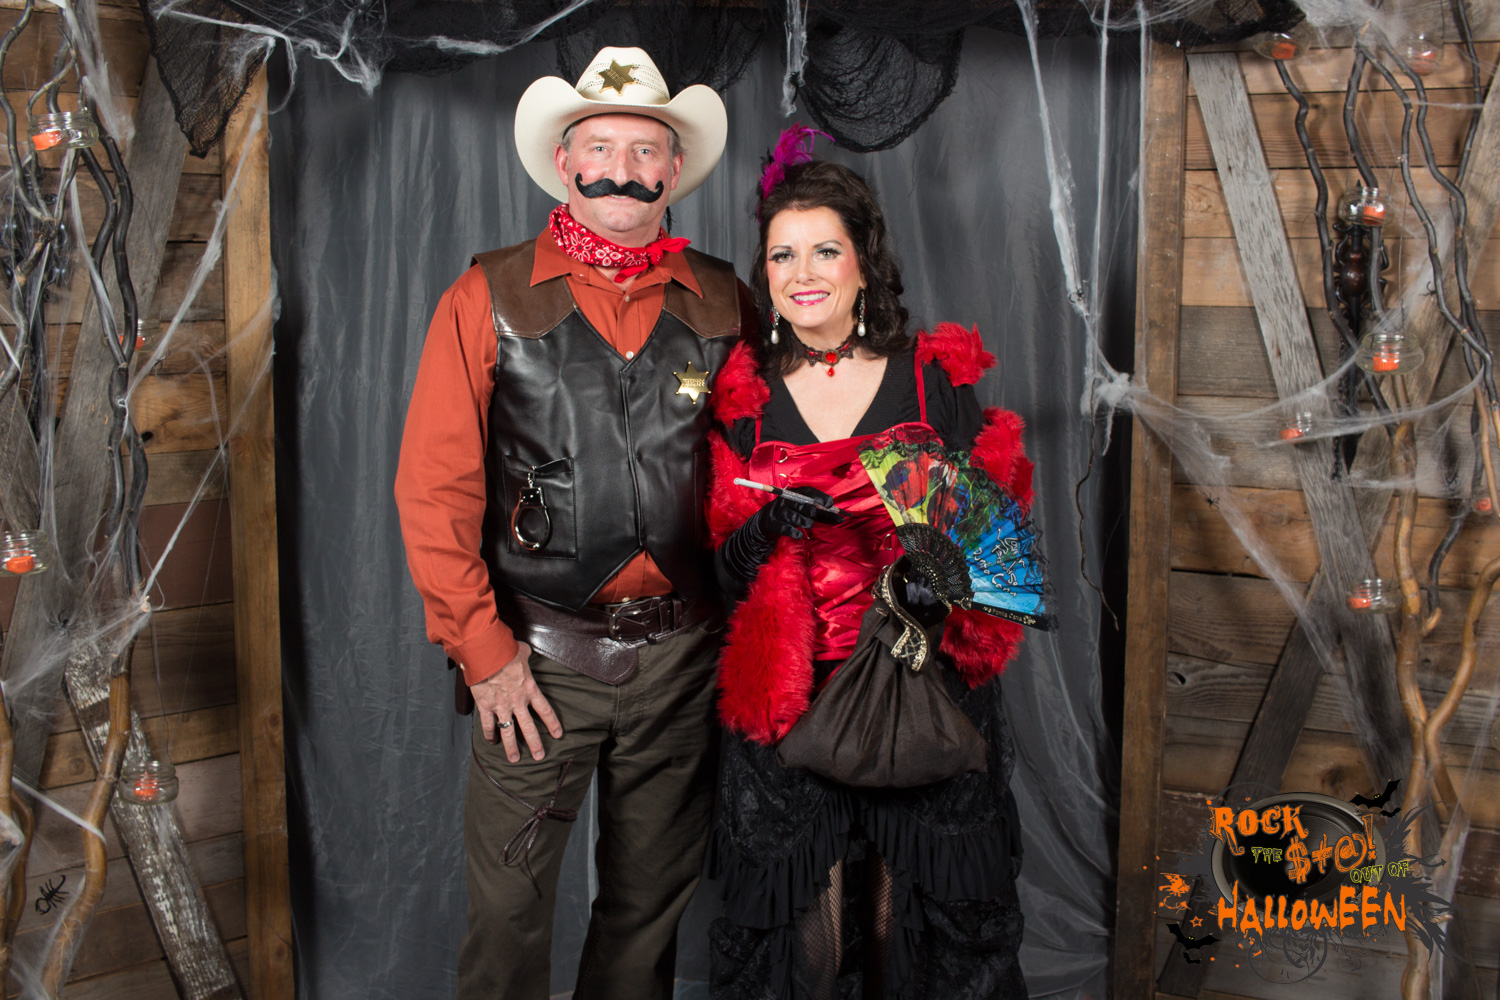 Halloween-PhotoBooth-006-6671